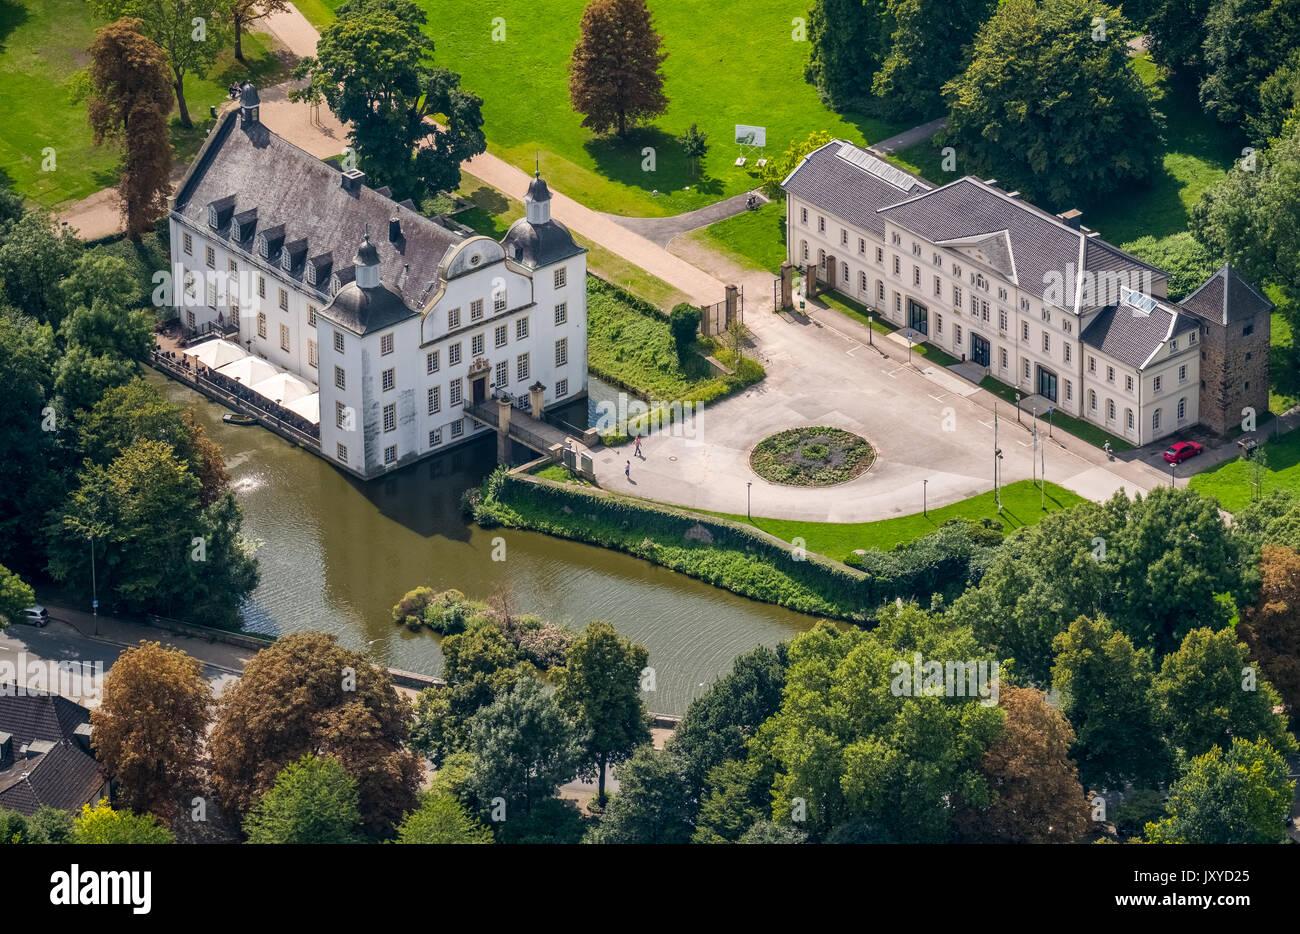 Schloss Borbeck Hochzeit Schloss Borbeck Baroque Moated Castle Main House And An